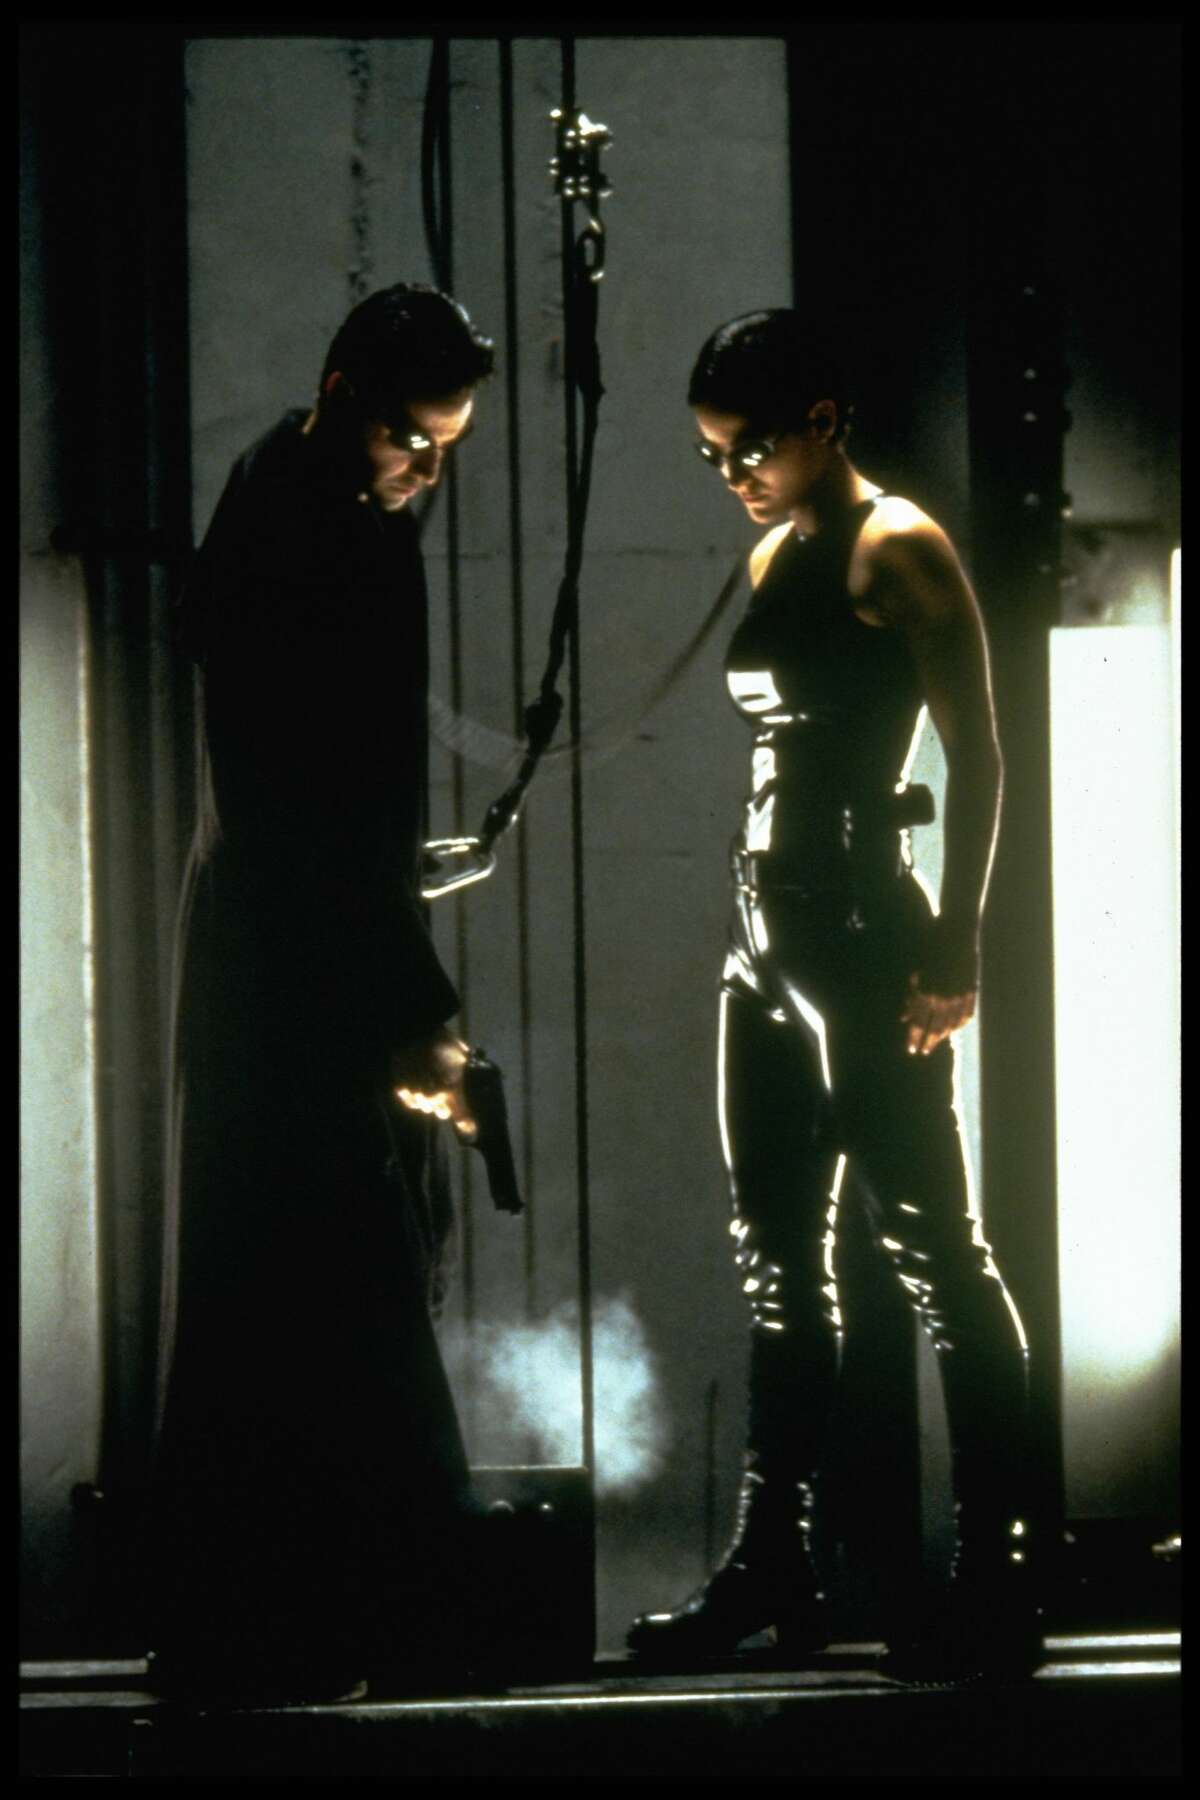 Keanu Reeves and Carrie-Anne Moss in The Matrix.